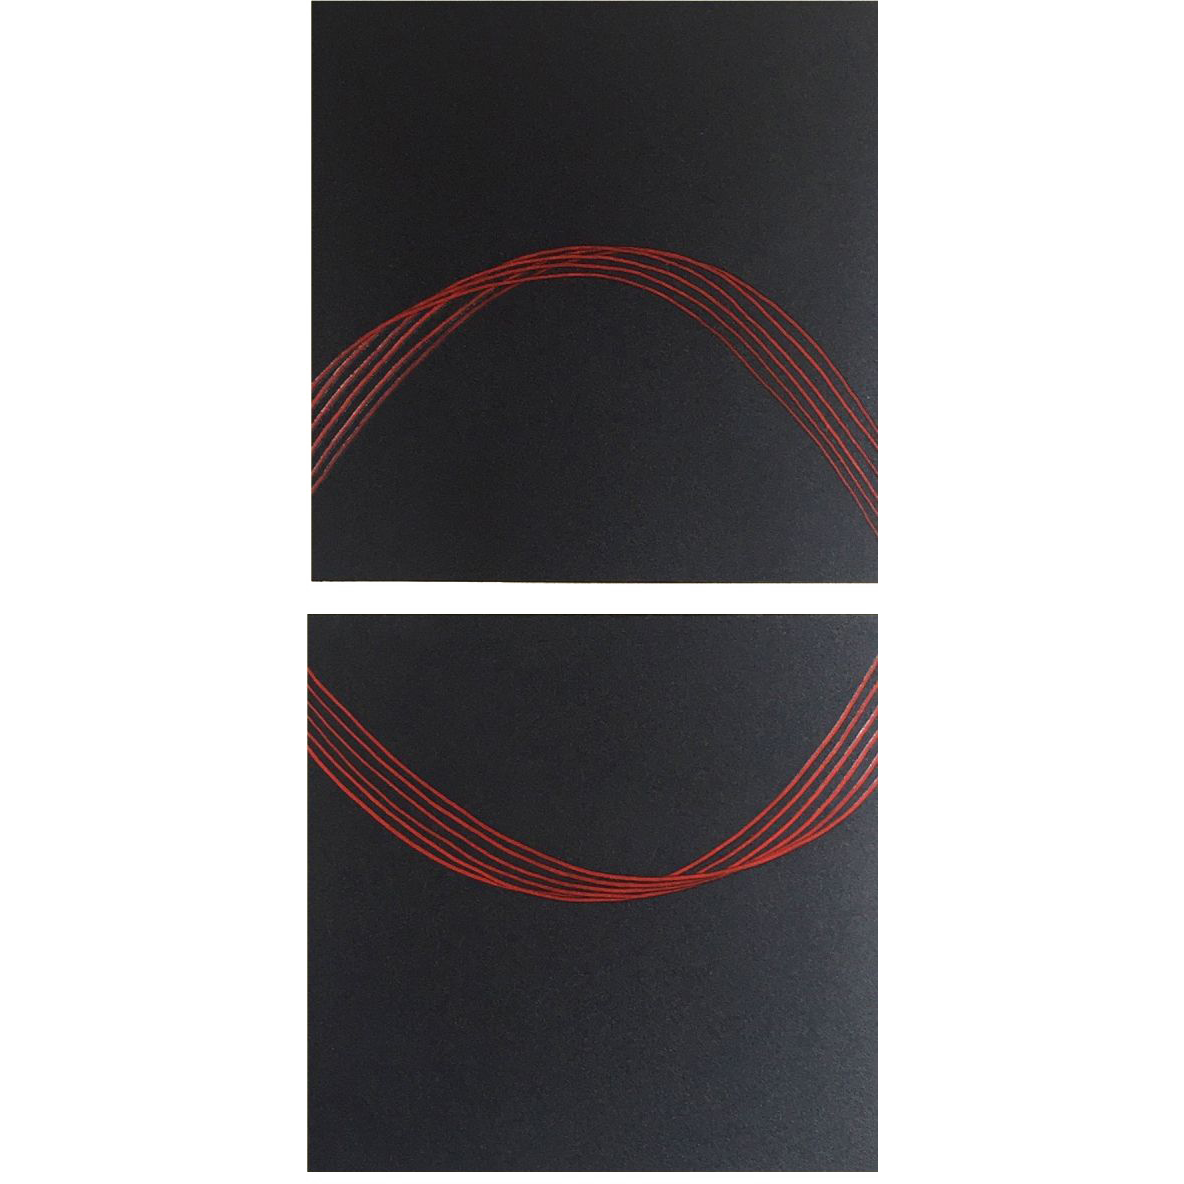 Griphos (1 and 13), 2013, Spray paint and oil on aluminum panel, 16 x 8""